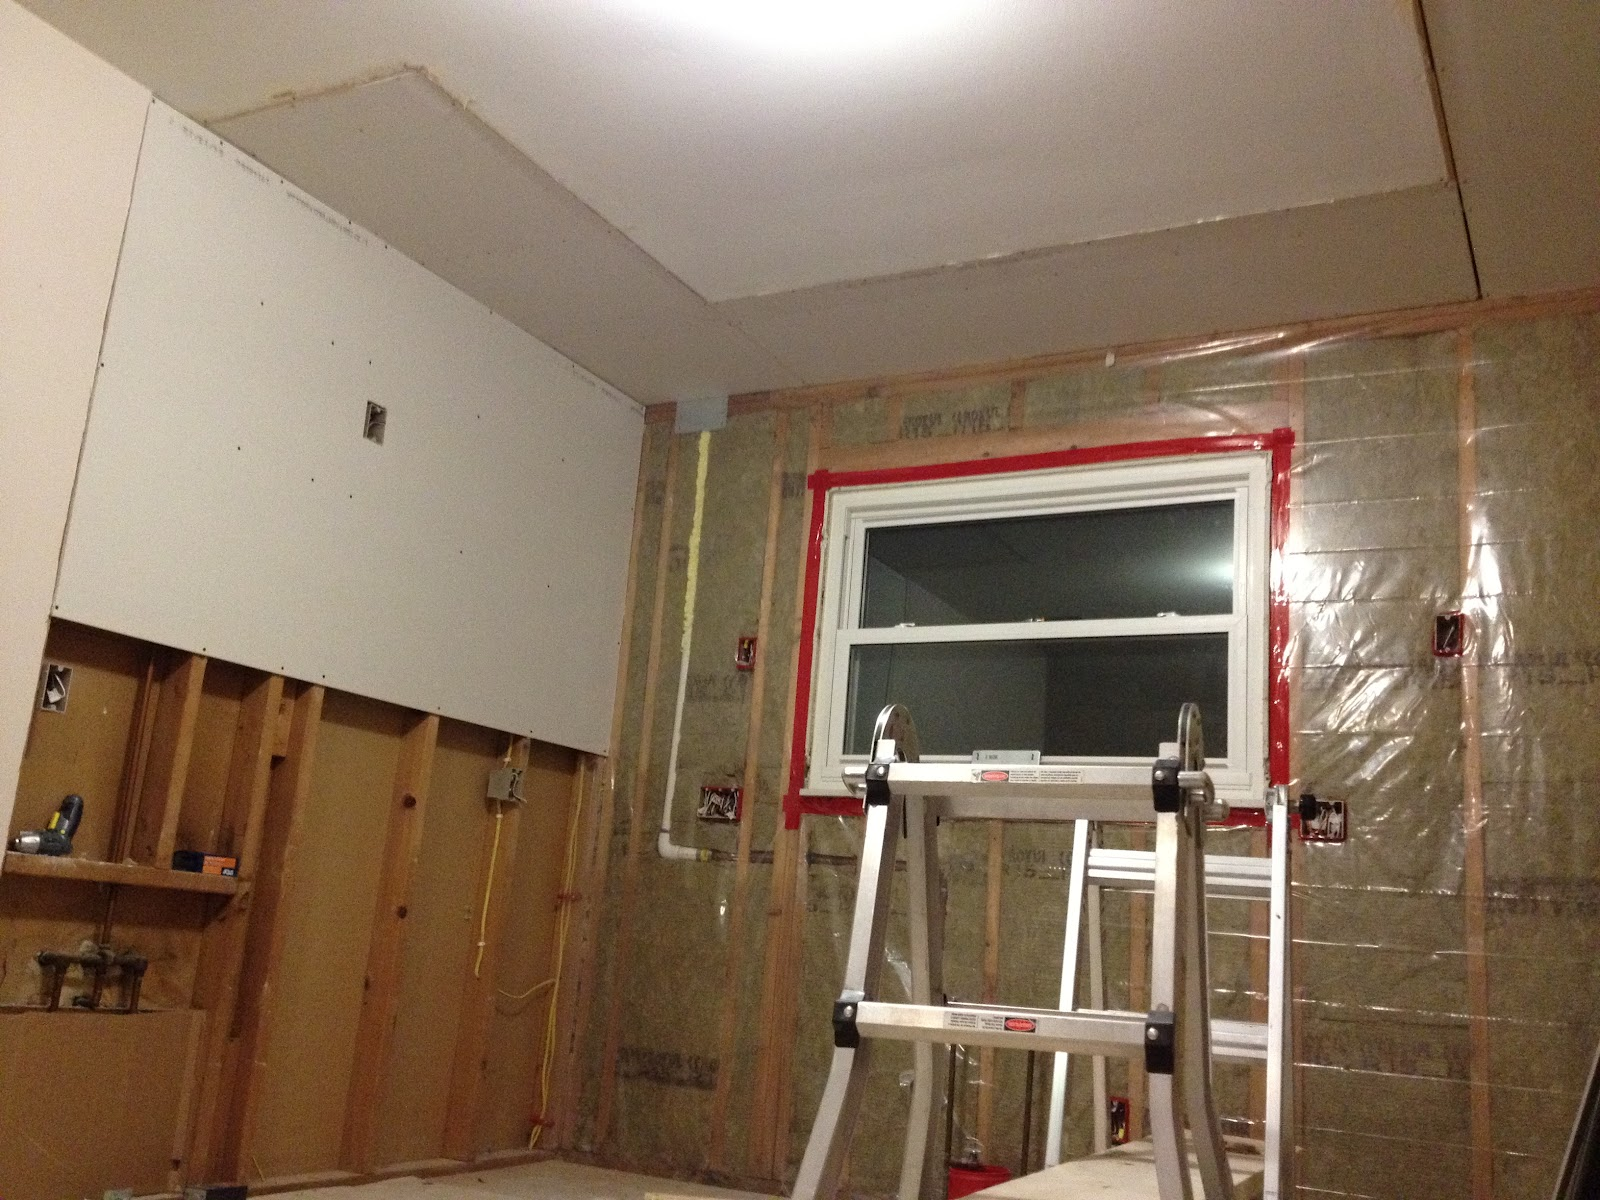 Drywall Moisture Barrier : Our ikea kitchen vapor barrier ceiling drywall